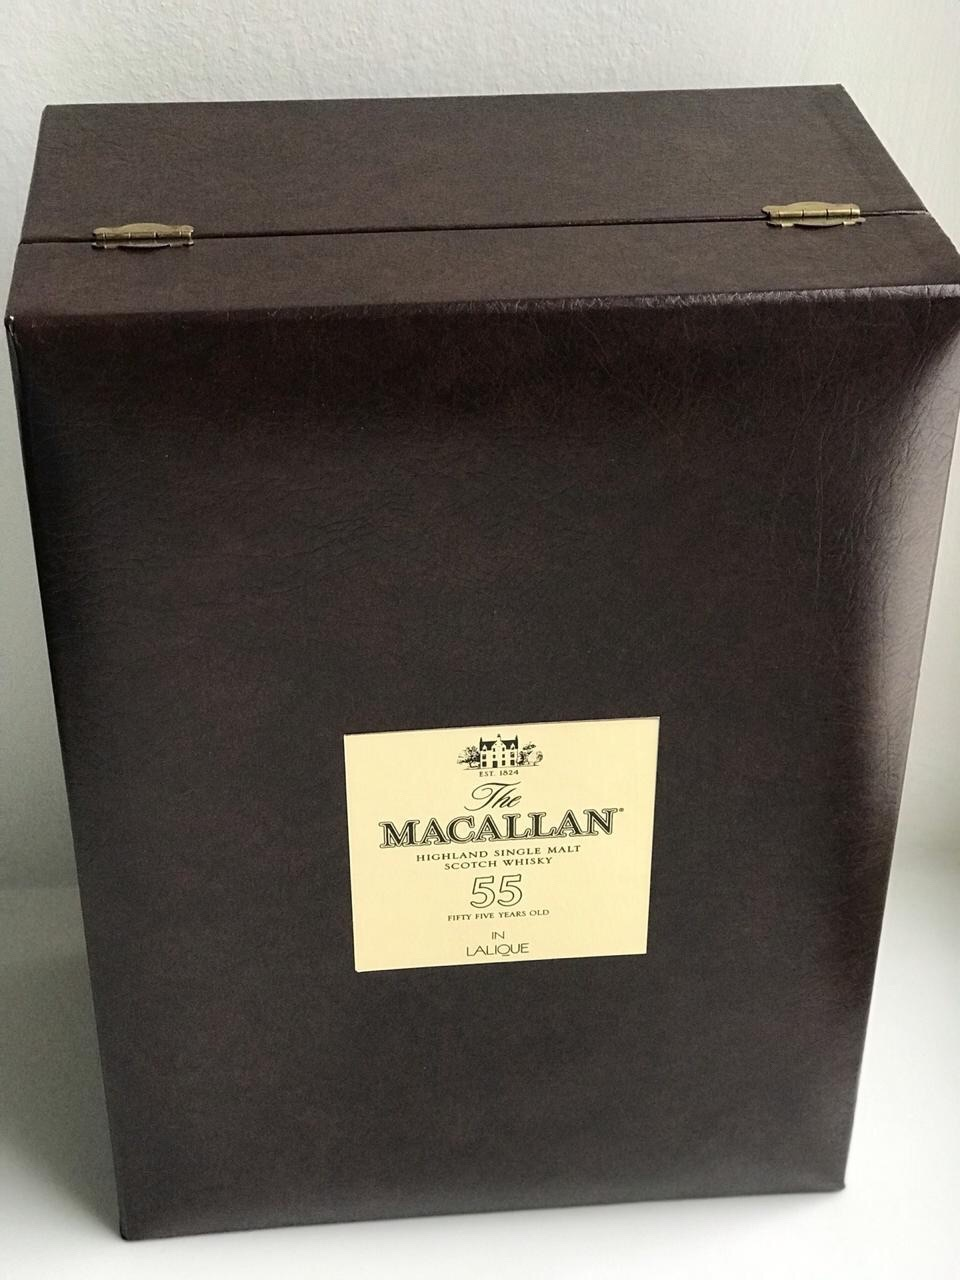 Macallan Lalique 55 years